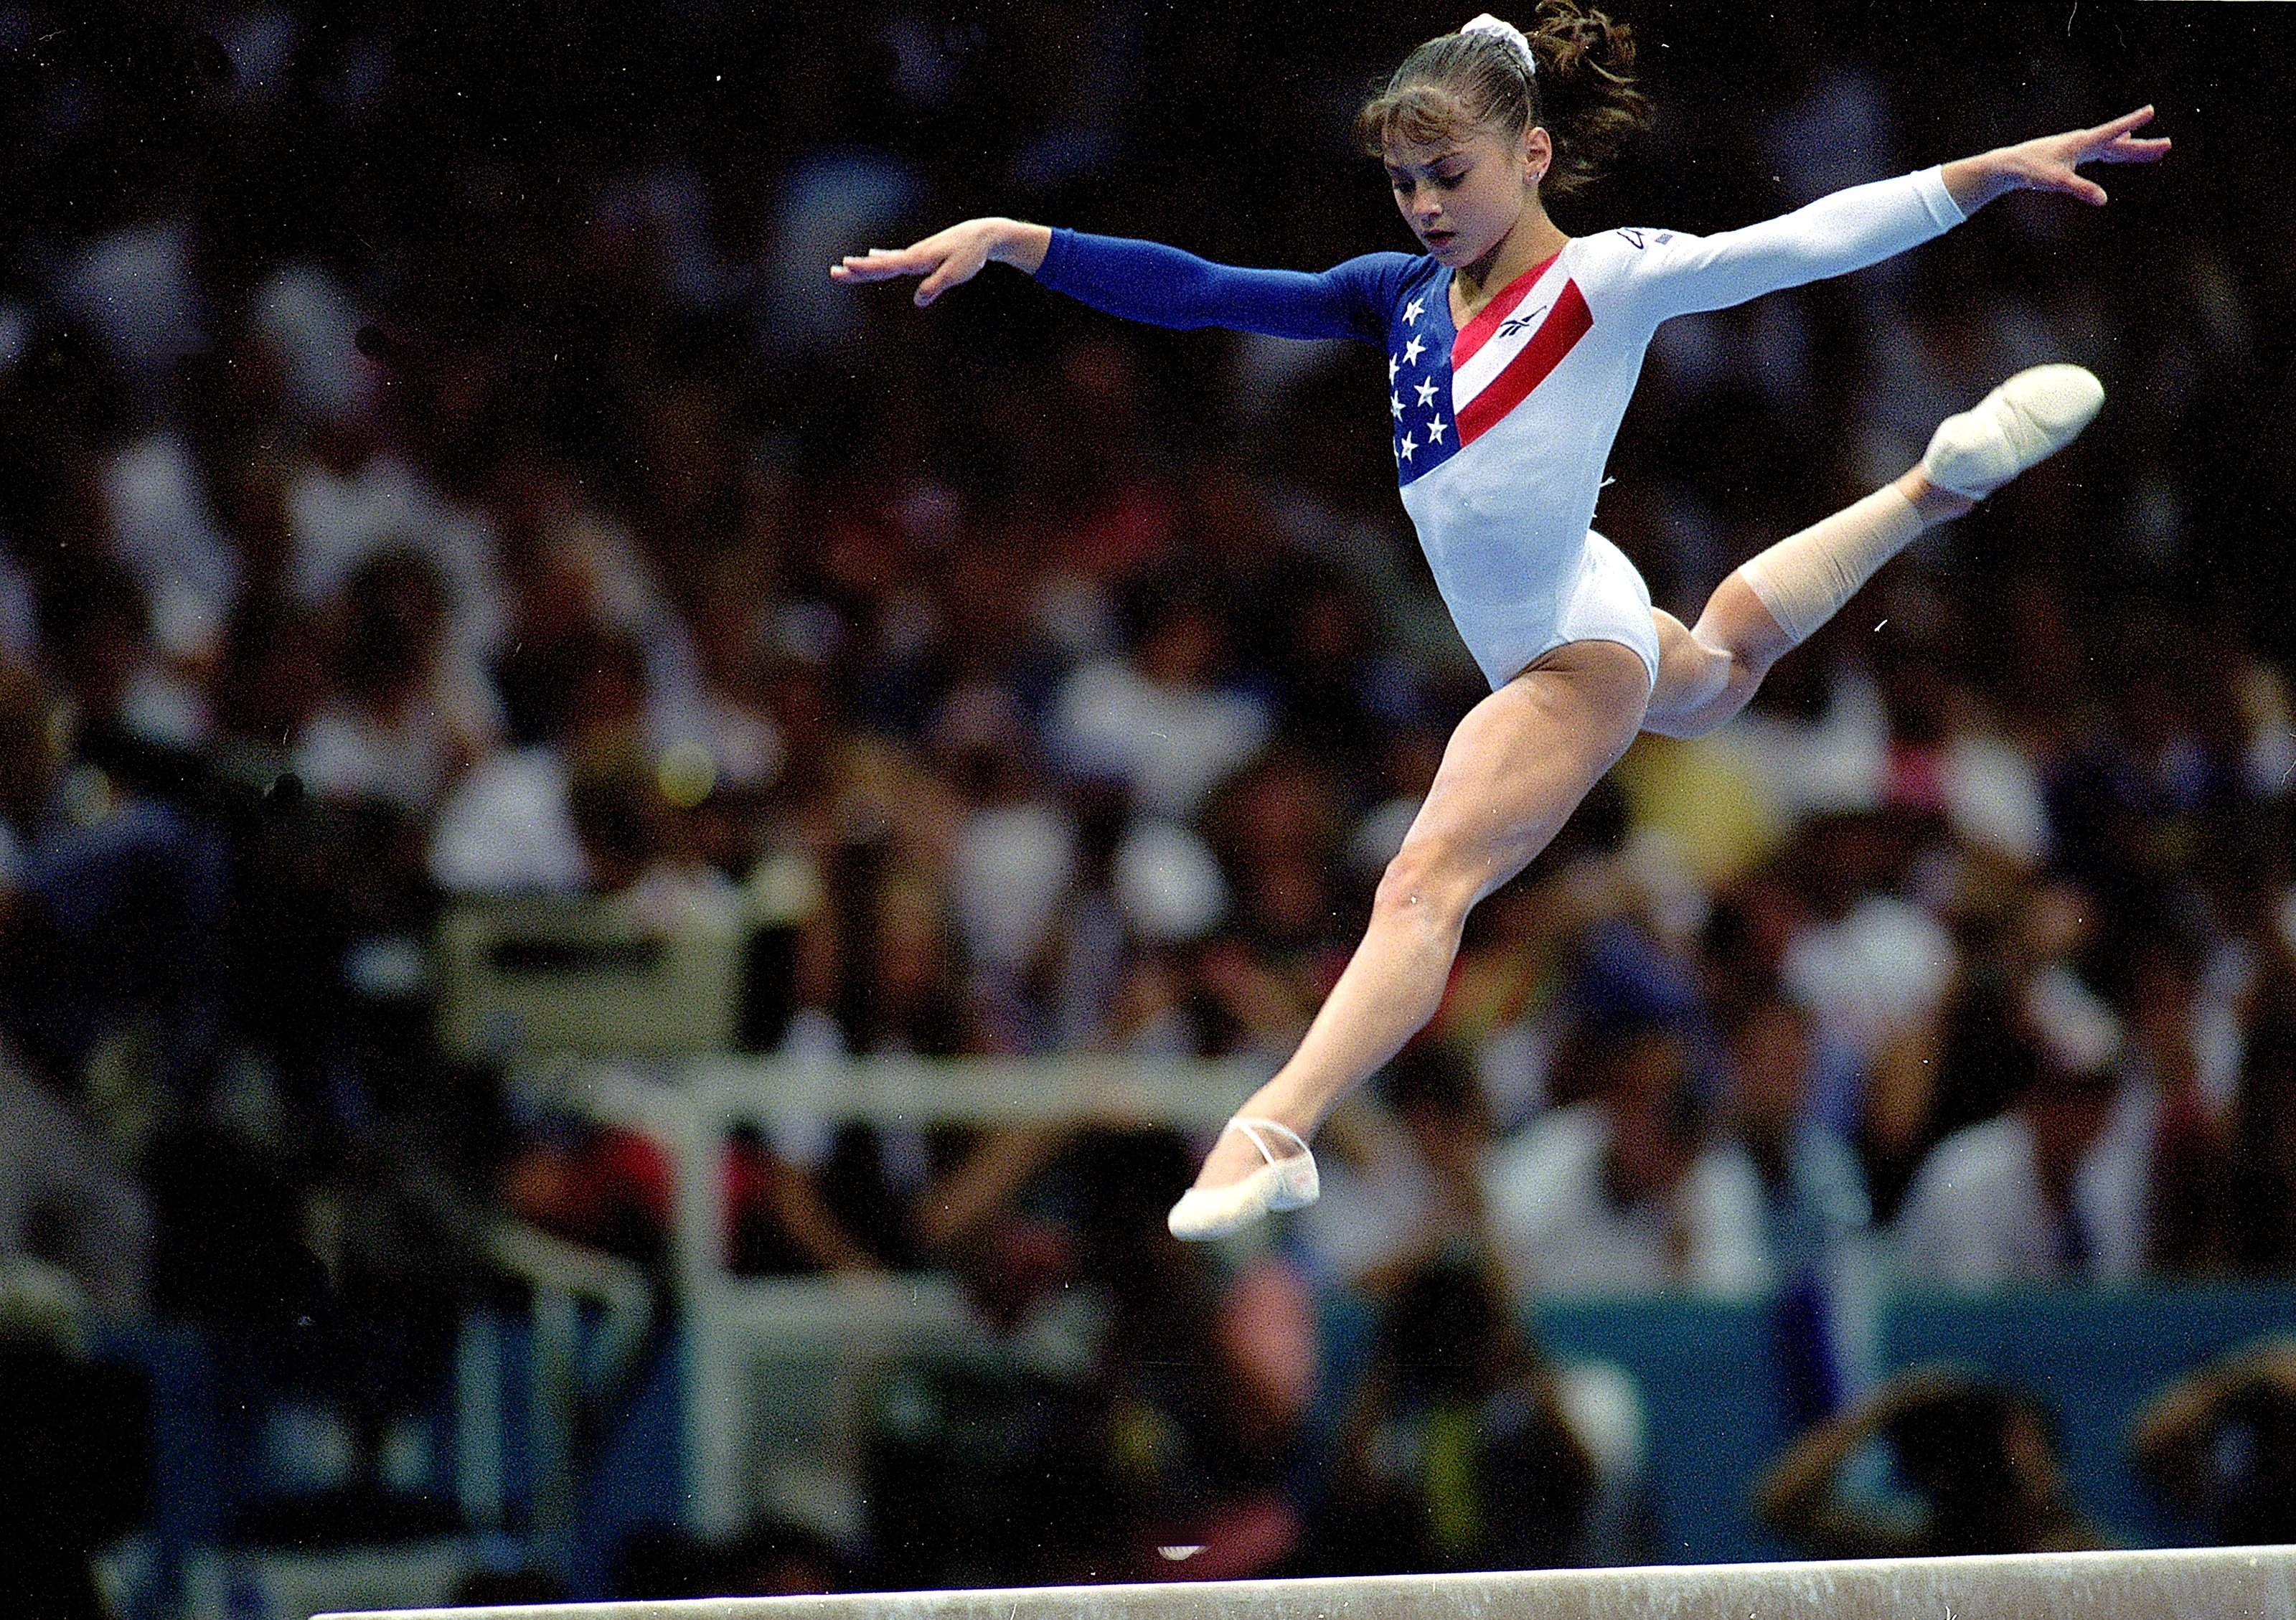 American gymnast Dominique Moceanu competes during the beam event at the1996 Olympic Games in Atlanta.